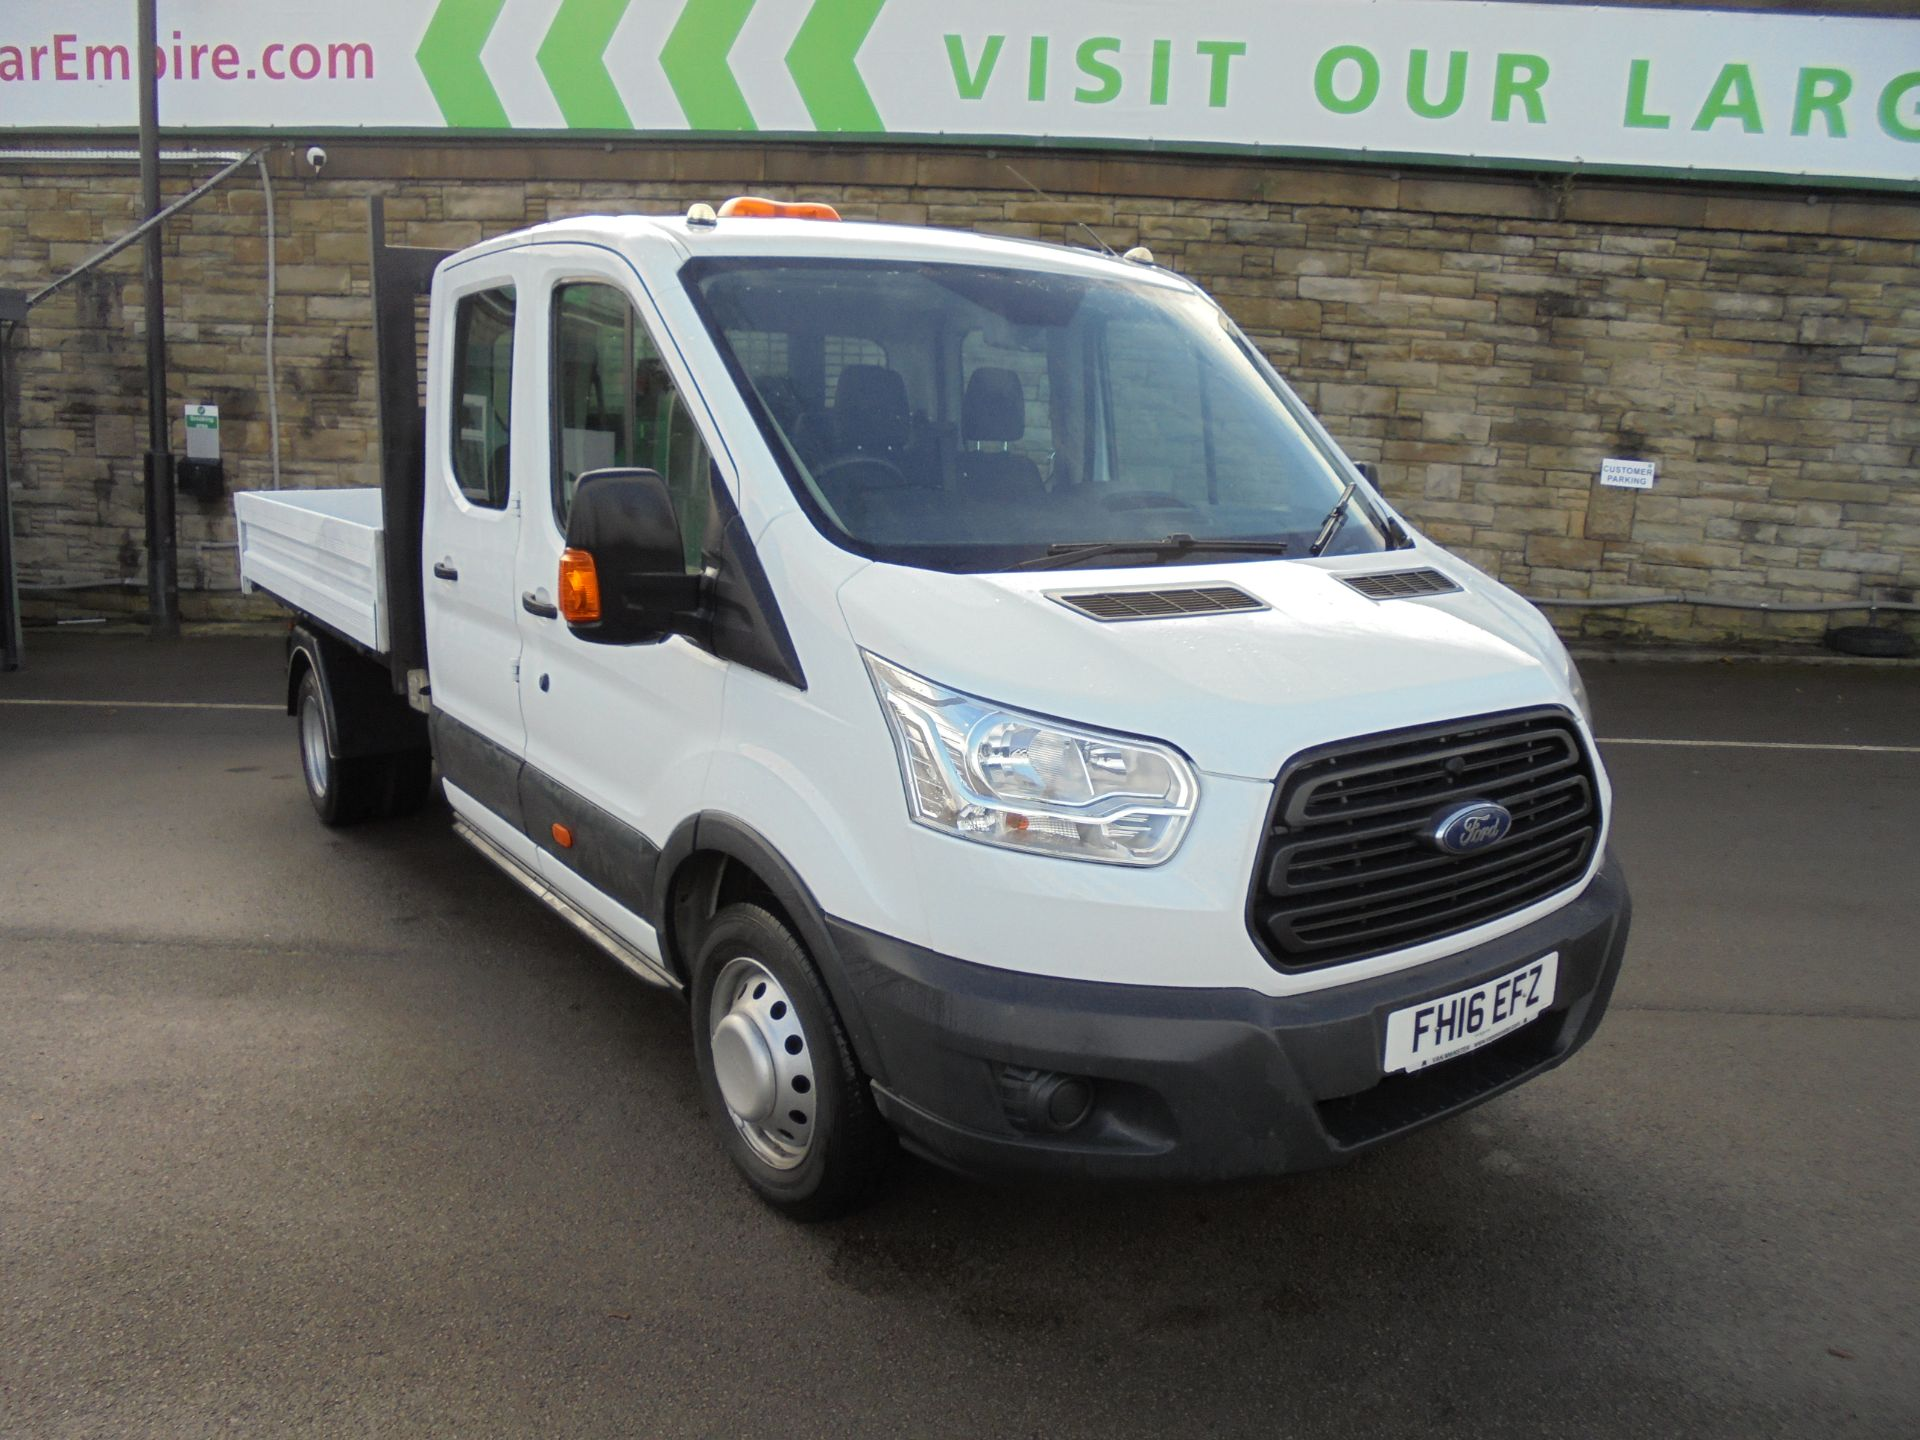 2016 Ford Transit 2.2 Tdci 125Ps Double Cab 1 way tipper (FH16EFZ)